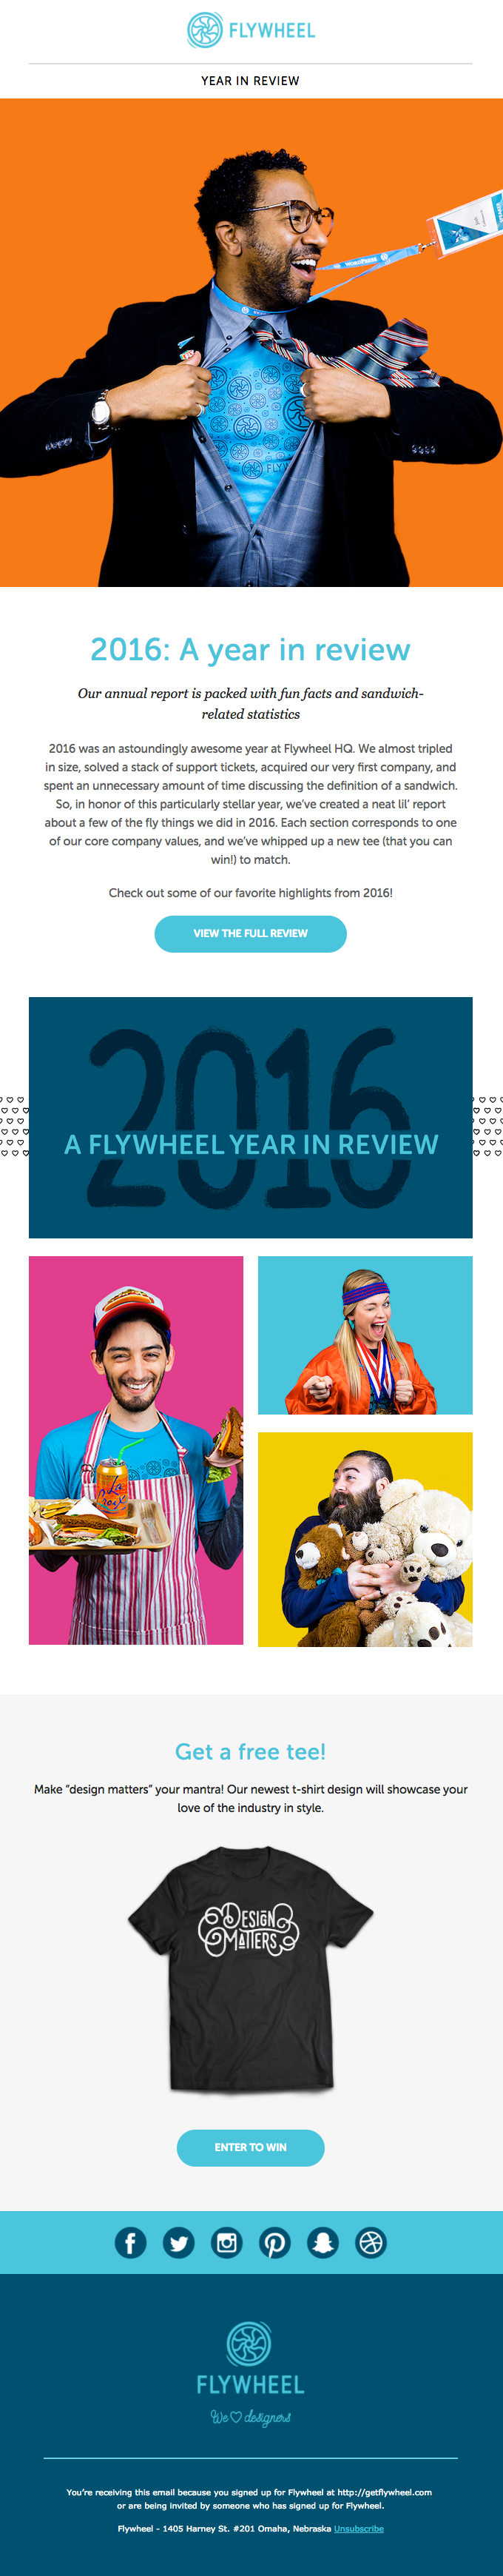 Thanks for a super fly 2016! Our annual report + free tees